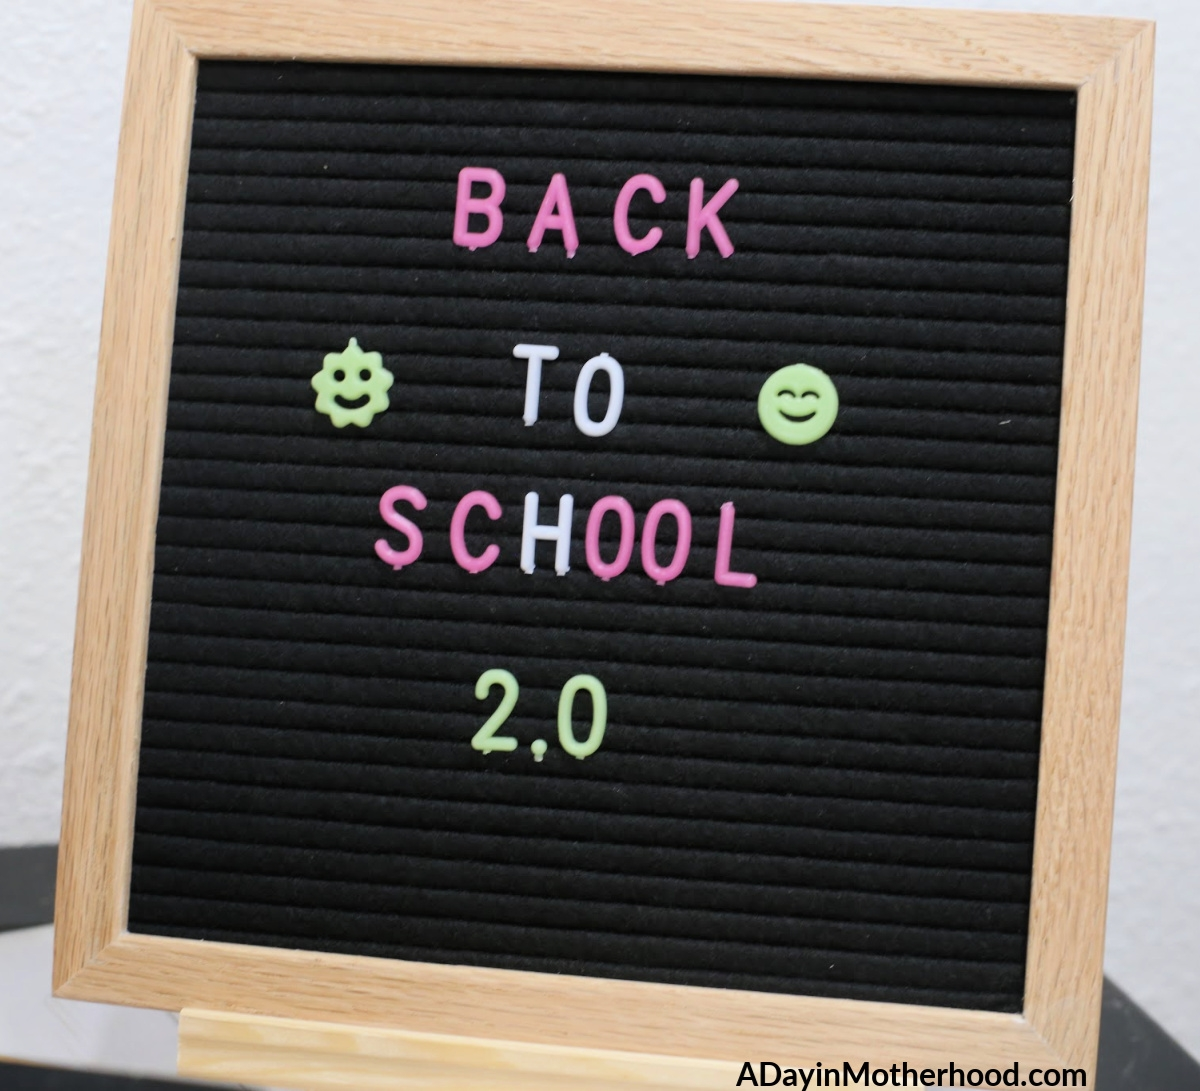 Back to School Organization 2.0 is a real thing for any busy family!